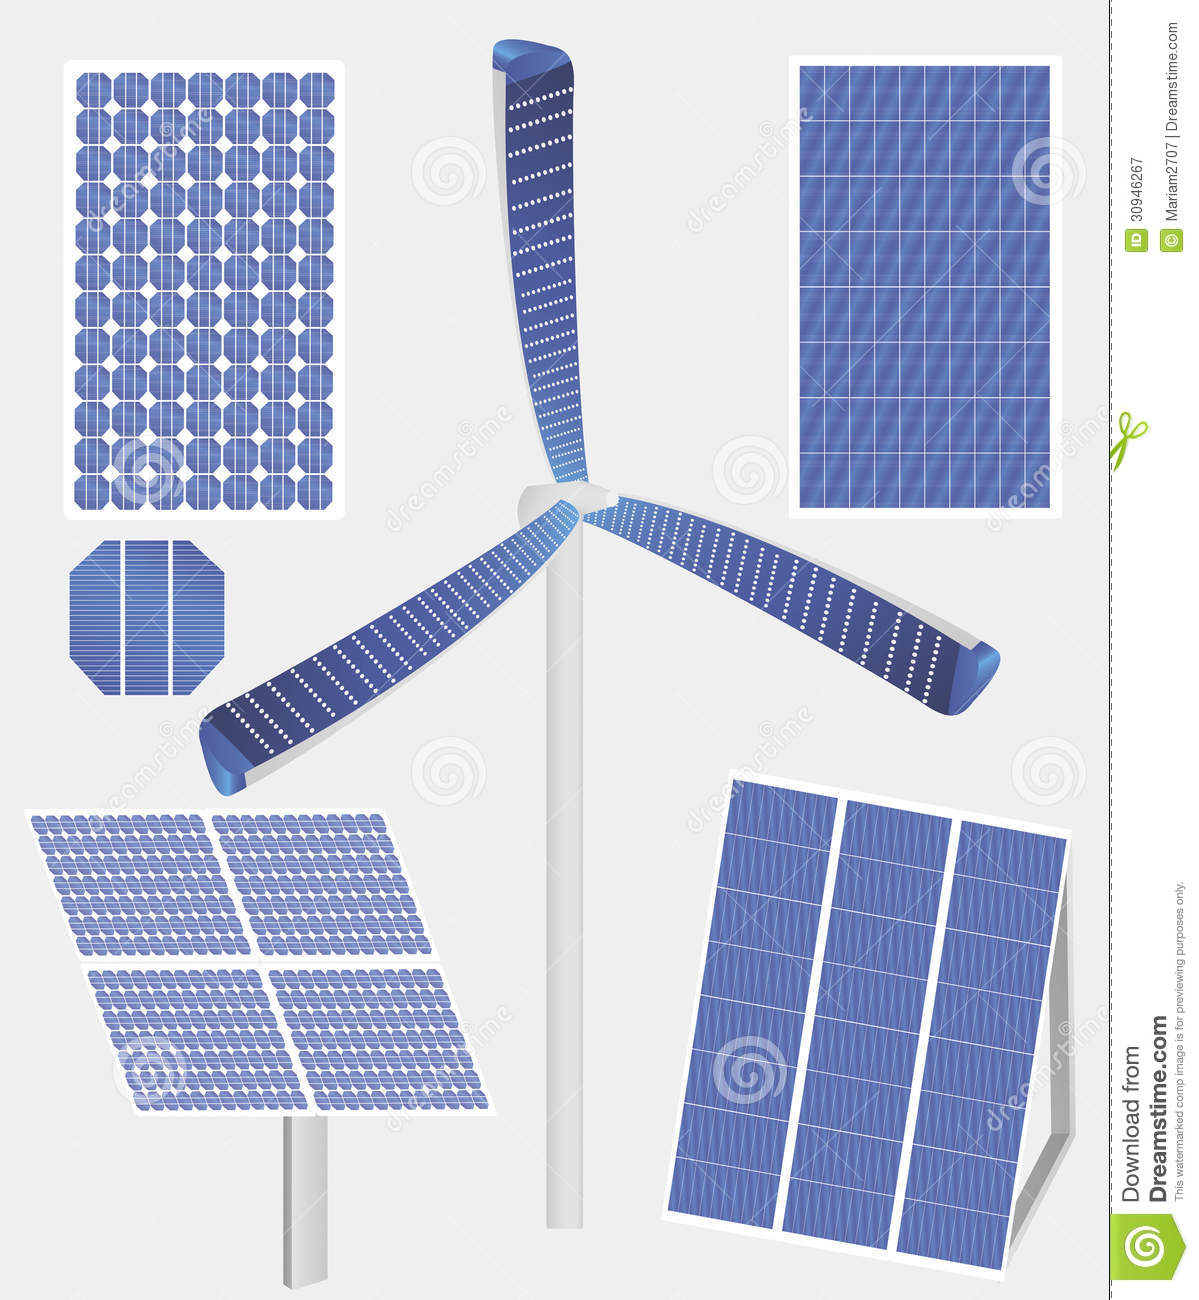 Types of solar panels - Tipos de paneles solares ...